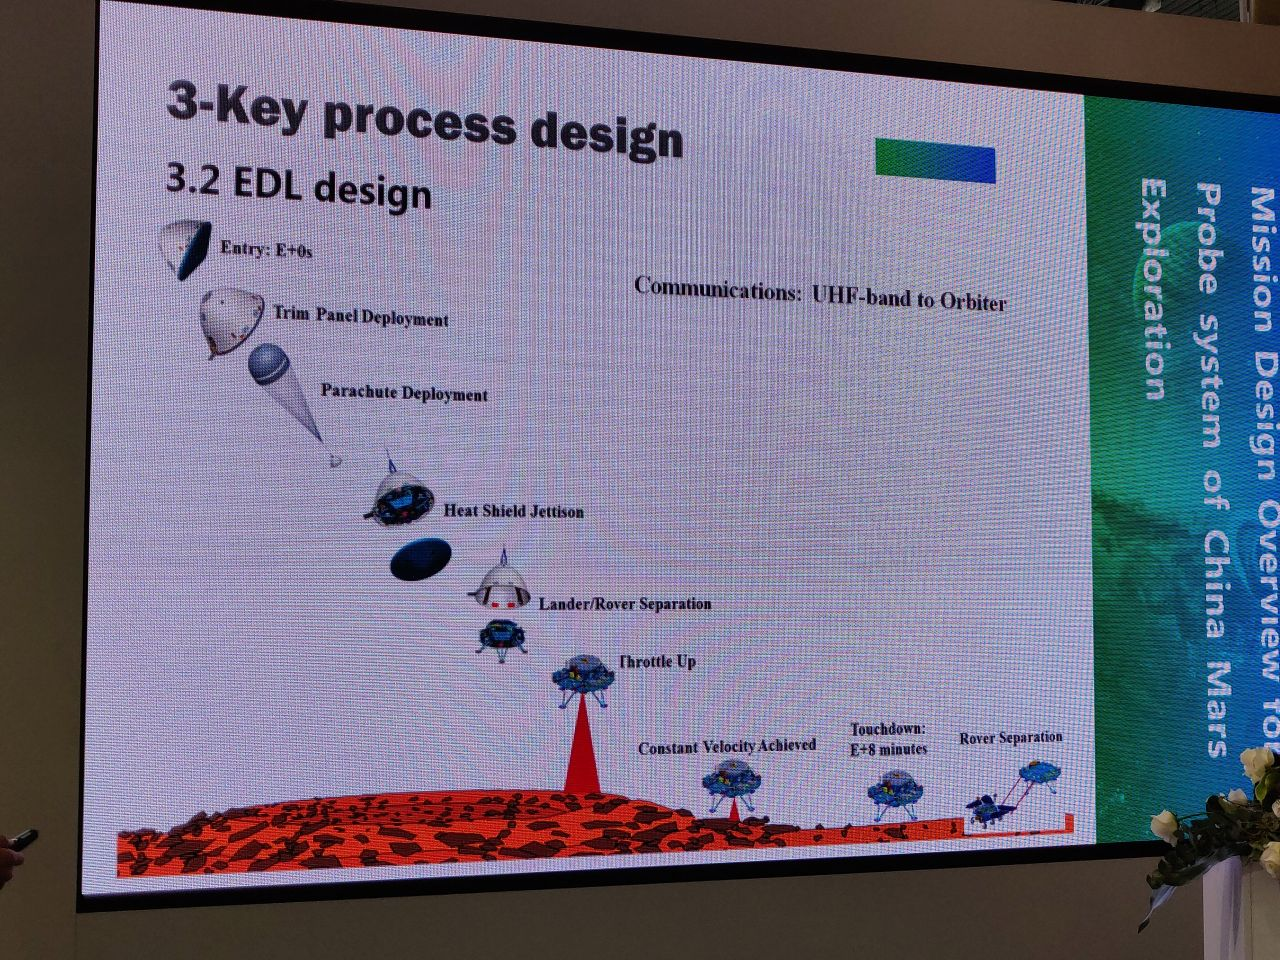 Entry, descent and landing design for the Chinese 2020 Mars mission presented at IAC 2018.